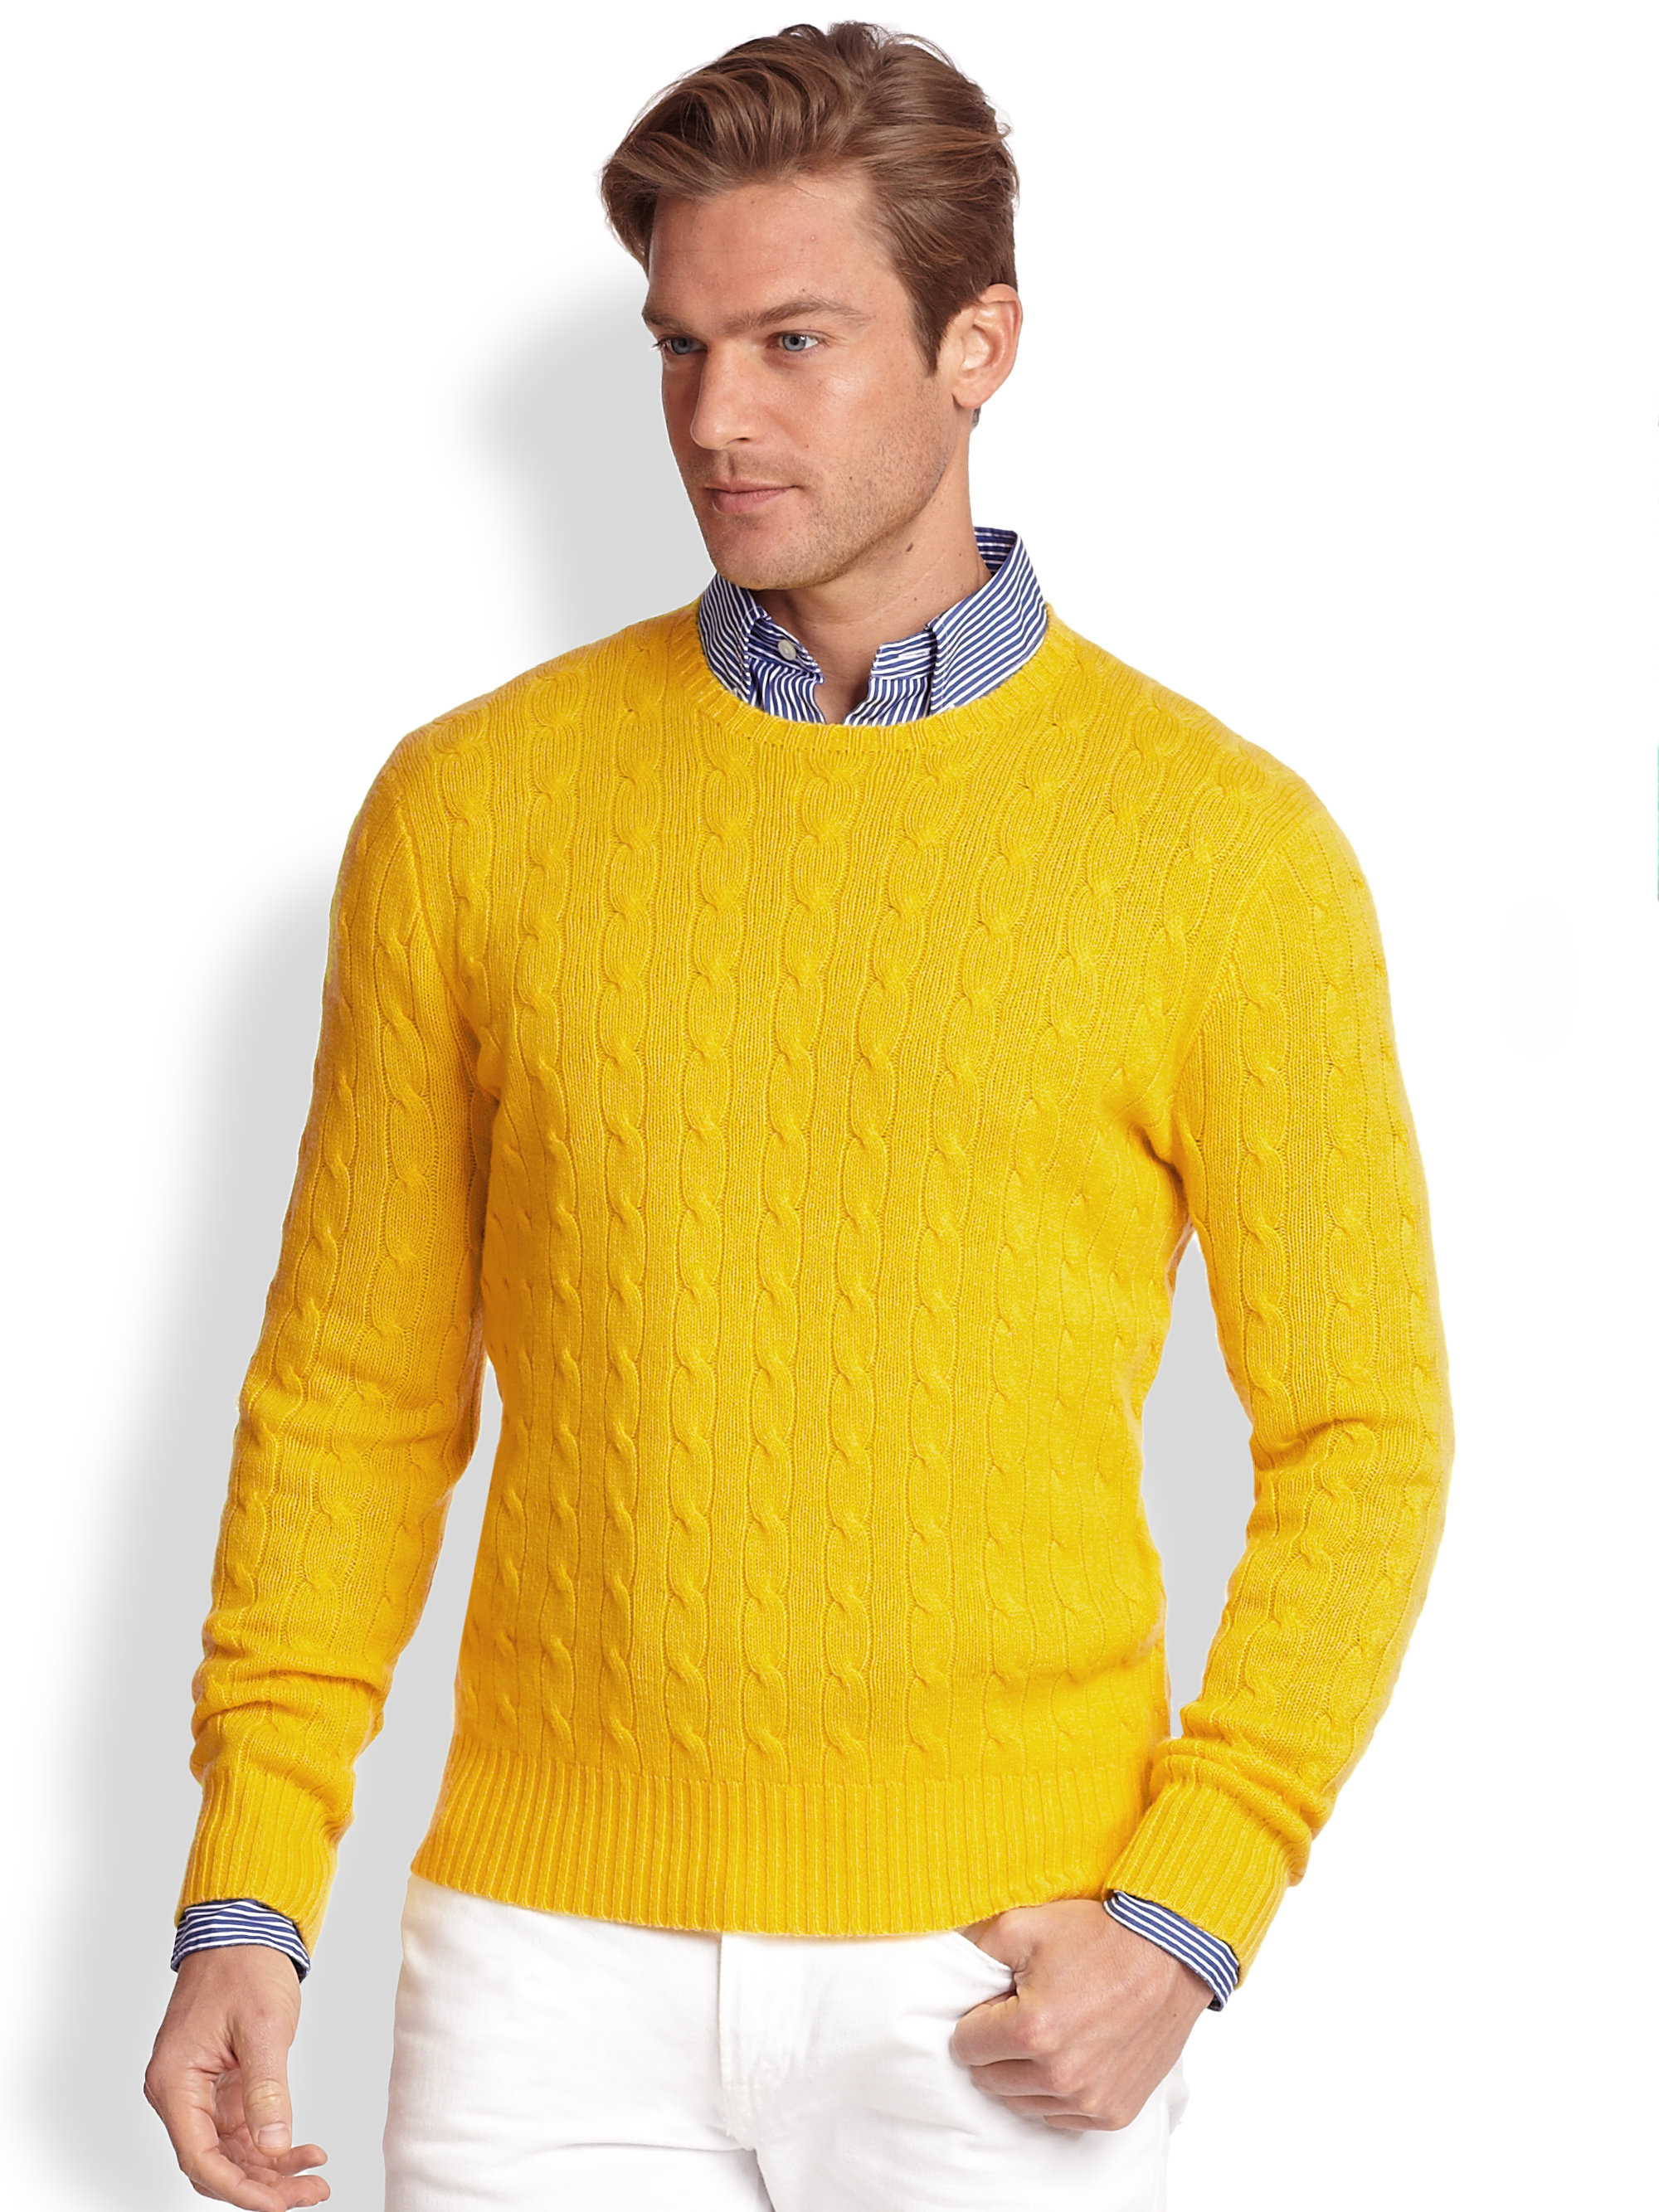 Men's Sweaters from Kohl's are sure to complete your look! Sweaters for Men are perfect for layering on a cold day, and are ideal for any occasion. Kohl's features many popular fits and styles of men's sweaters, like men's crewneck sweaters. Crewneck sweaters provide a timeless look.